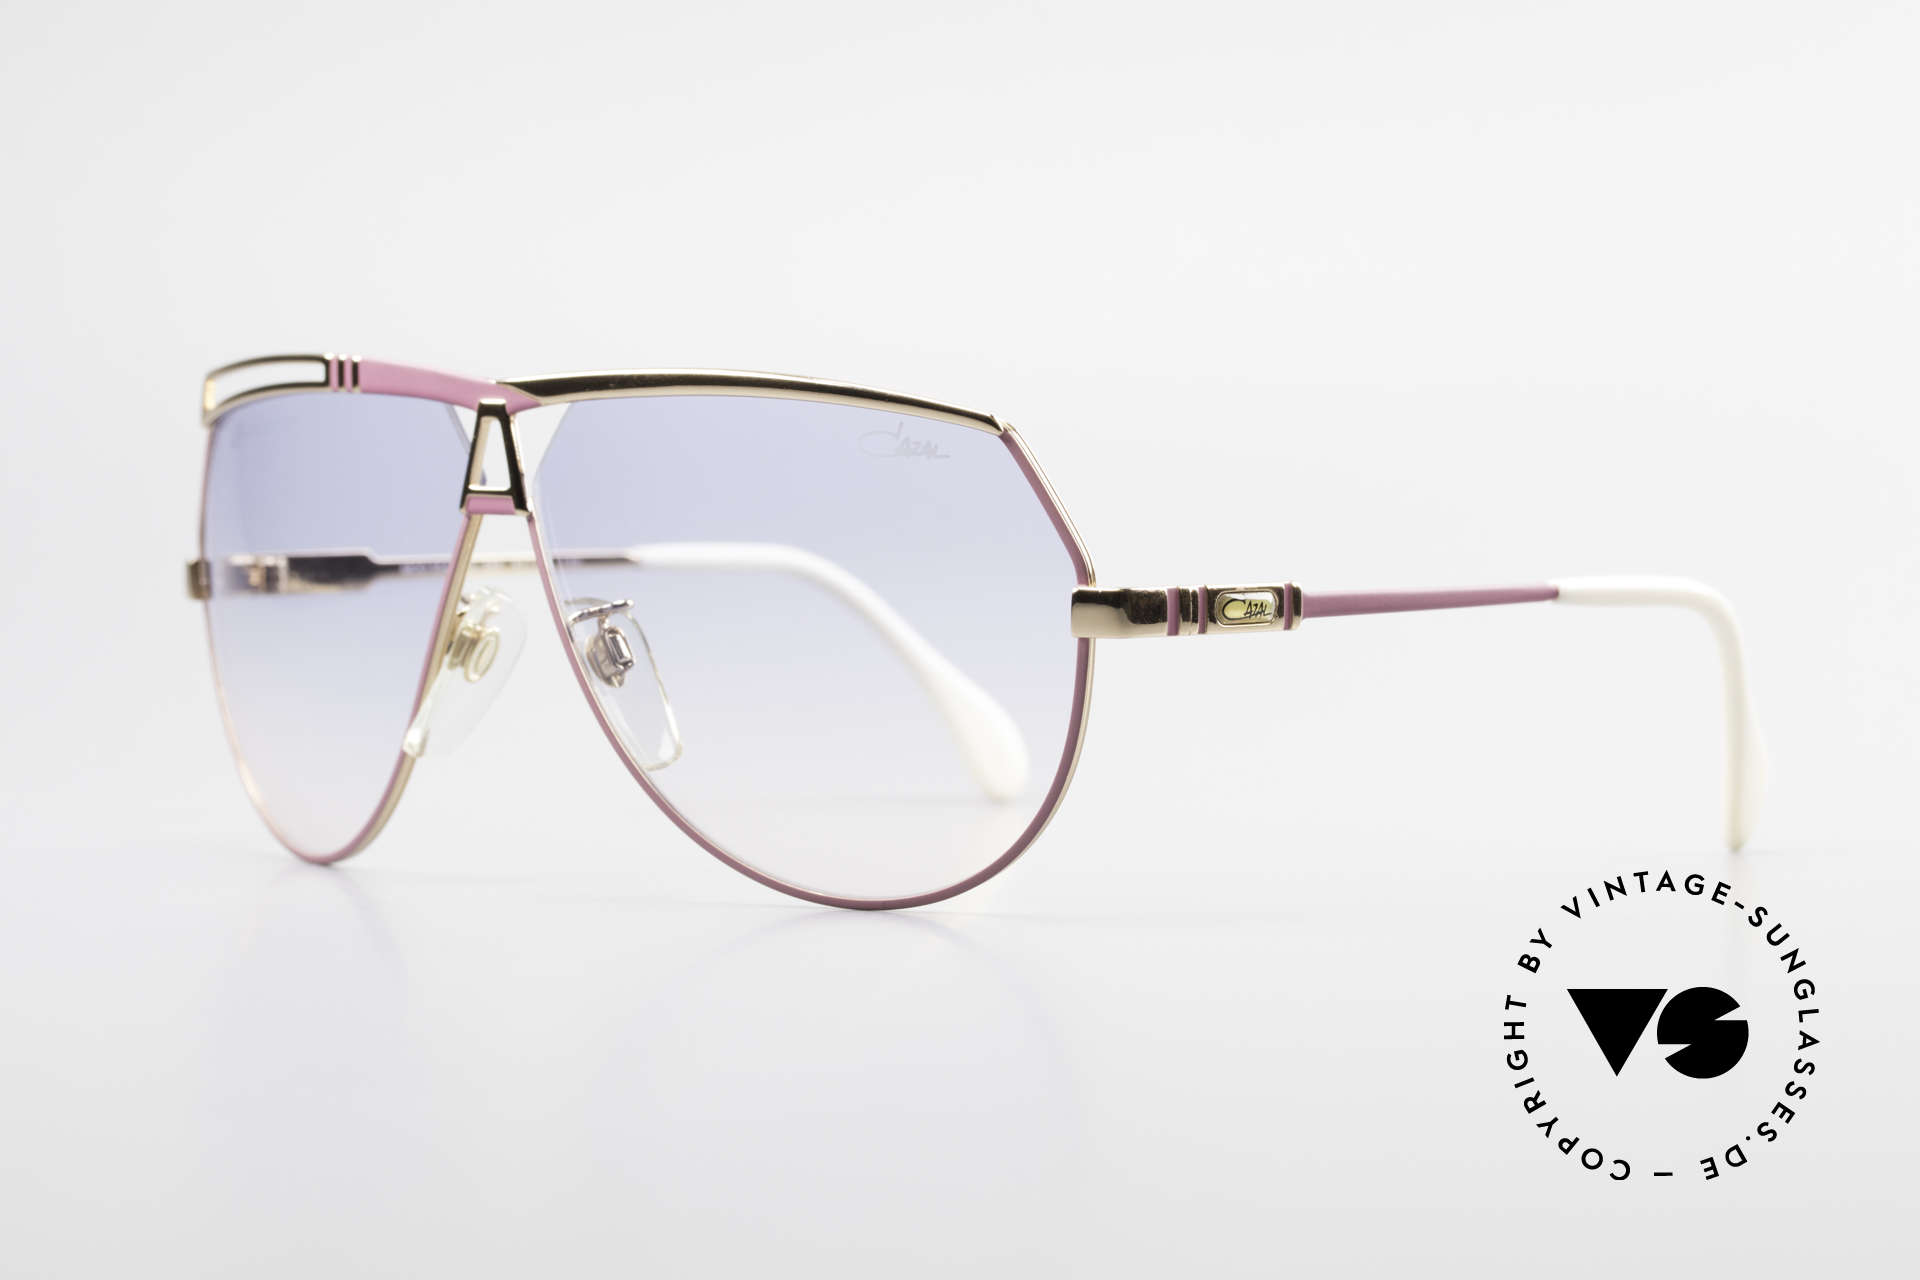 Cazal 954 Oversized 80's Sunglasses, aviator design with huge lenses & great coloring, Made for Women